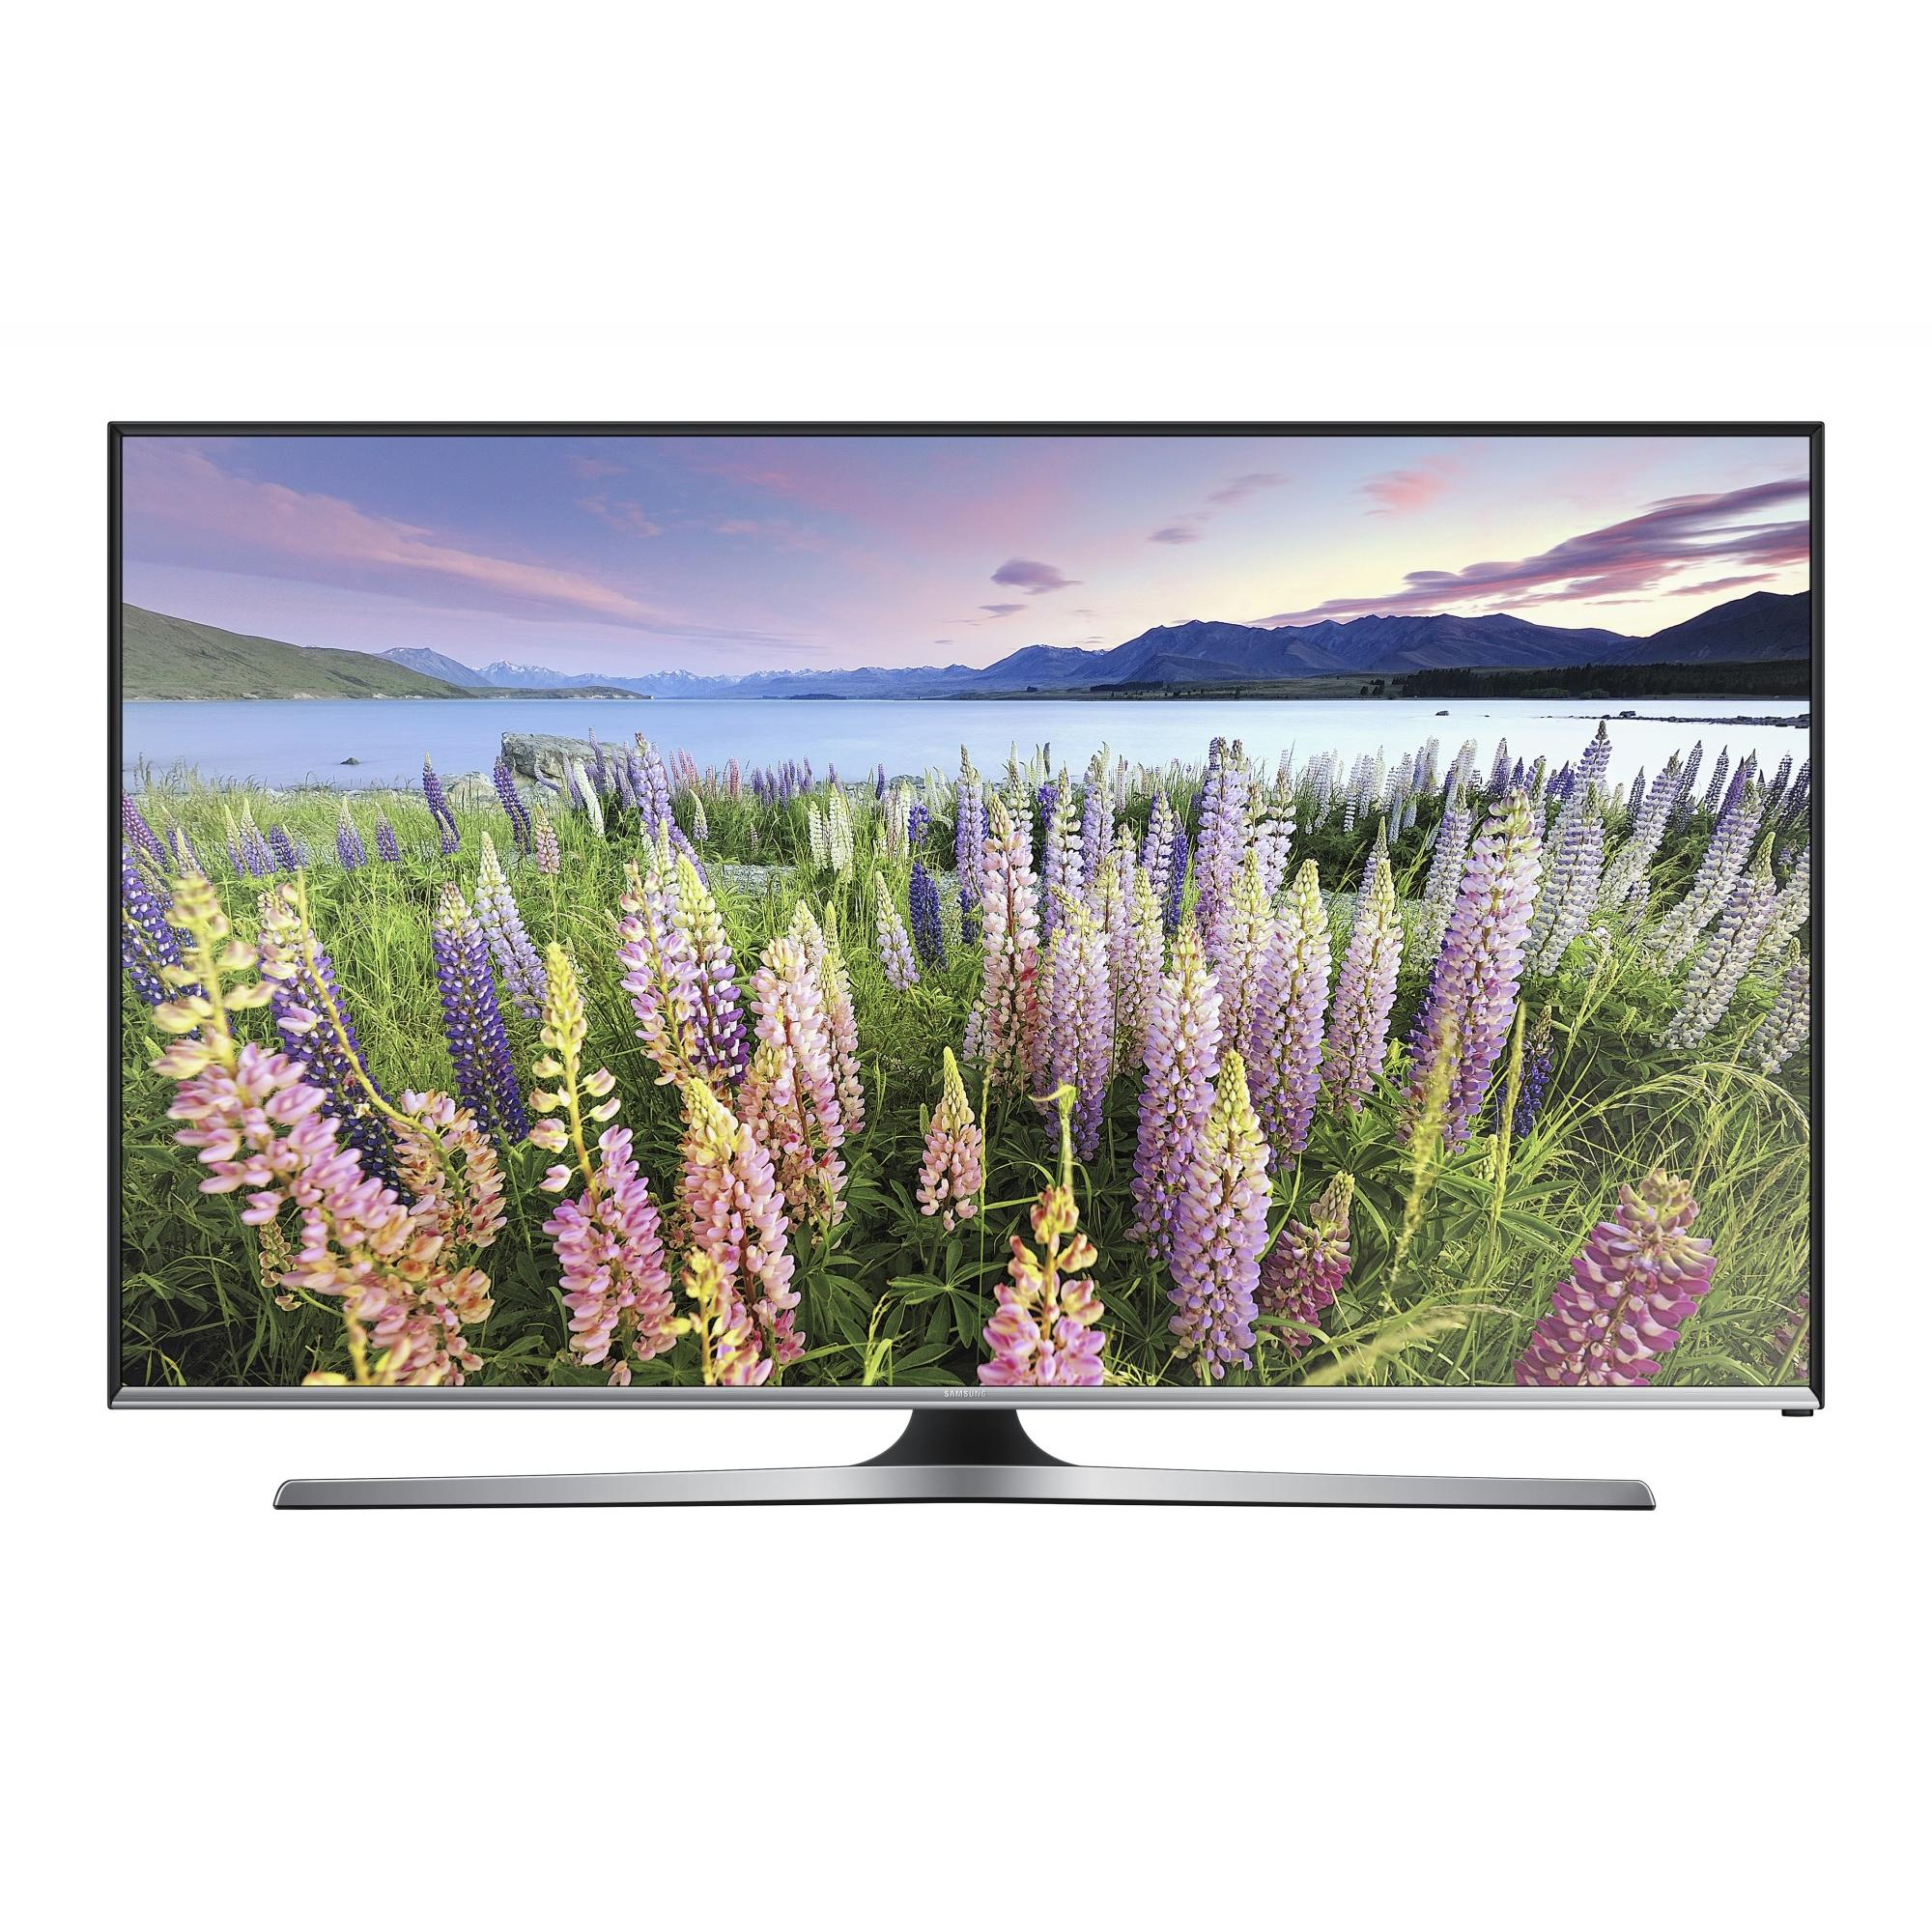 "SAMSUNG 48"" 5500 Series - Full HD Smart LED TV - 1080p, 120MR (Model#: UN48J5500)"